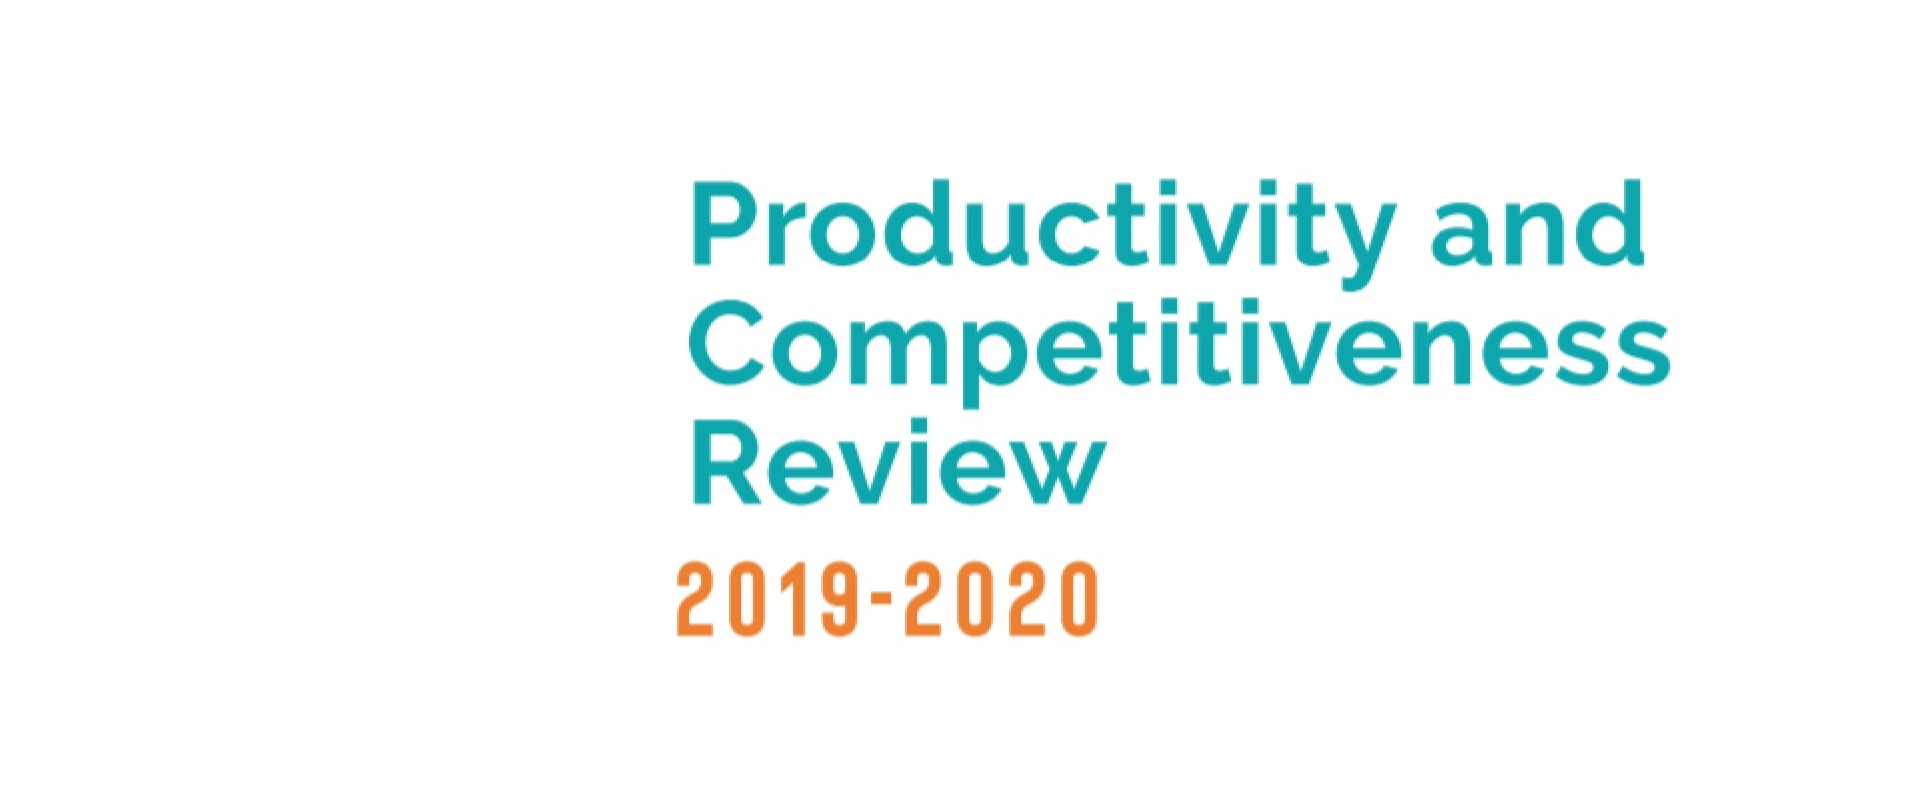 Productivity and Competitiveness Review 2020